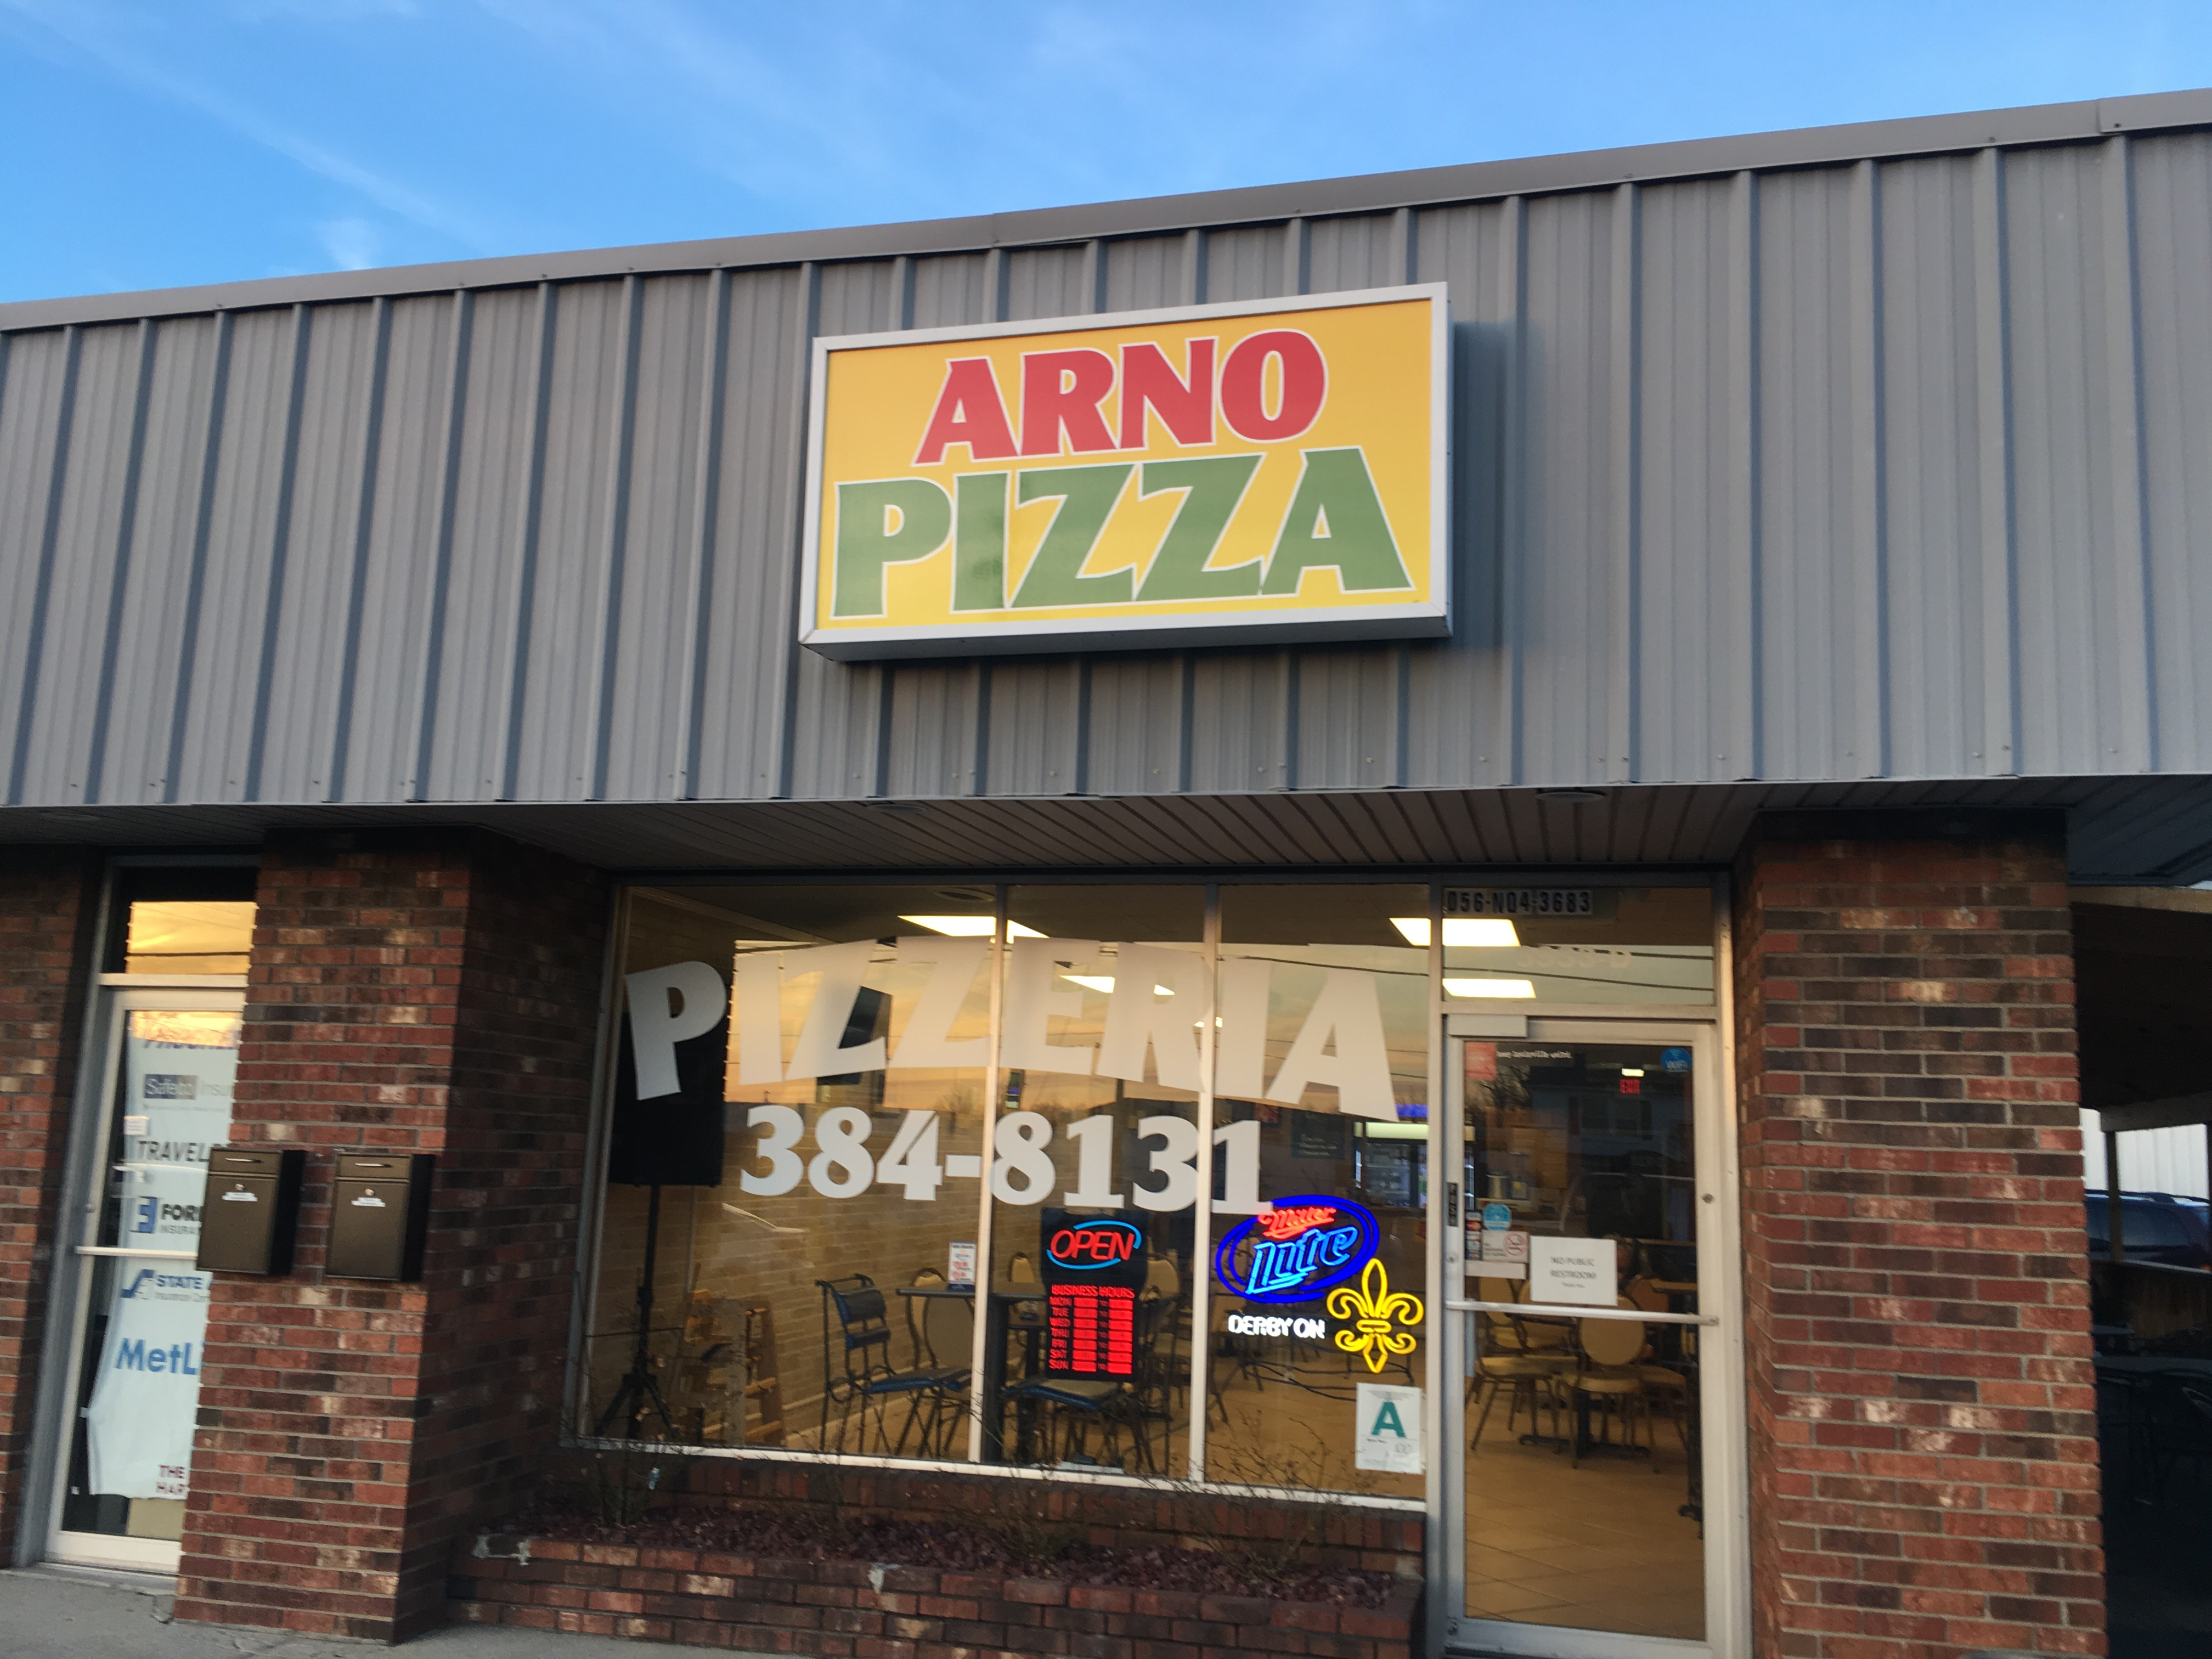 Arno Pizza on Bardstown Road